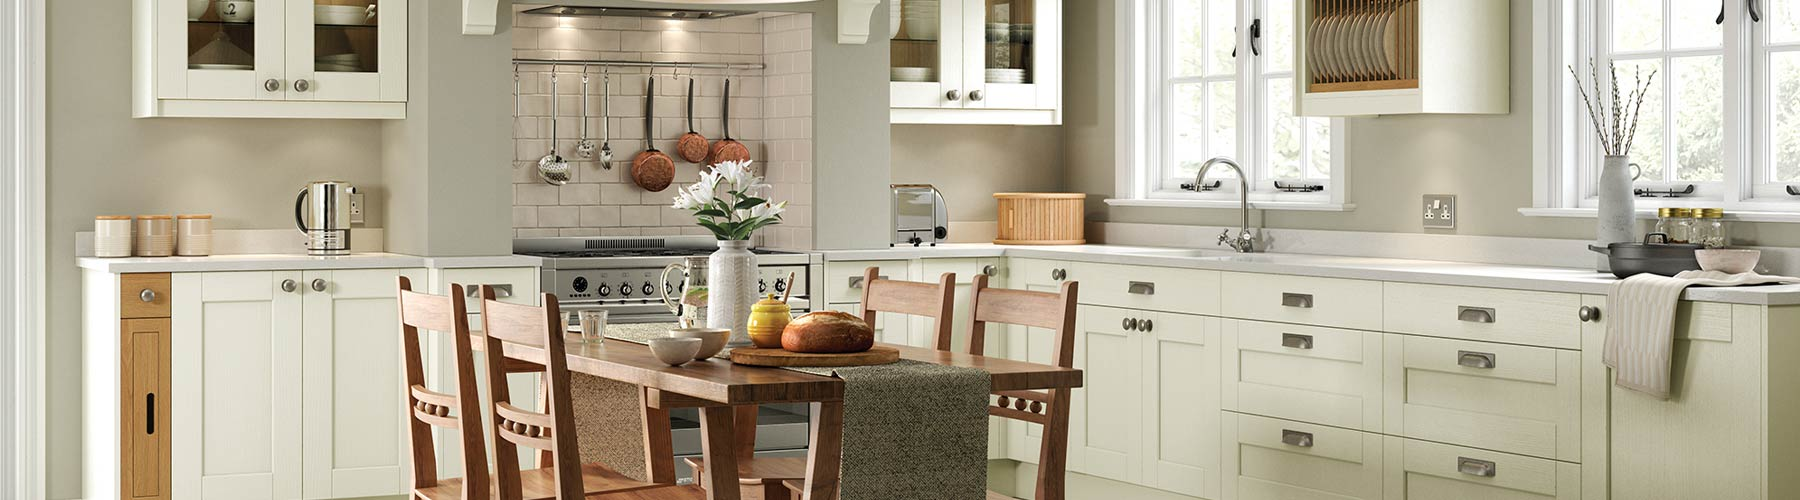 Classic Ivory shaker kitchen, from our classic kitchen range.